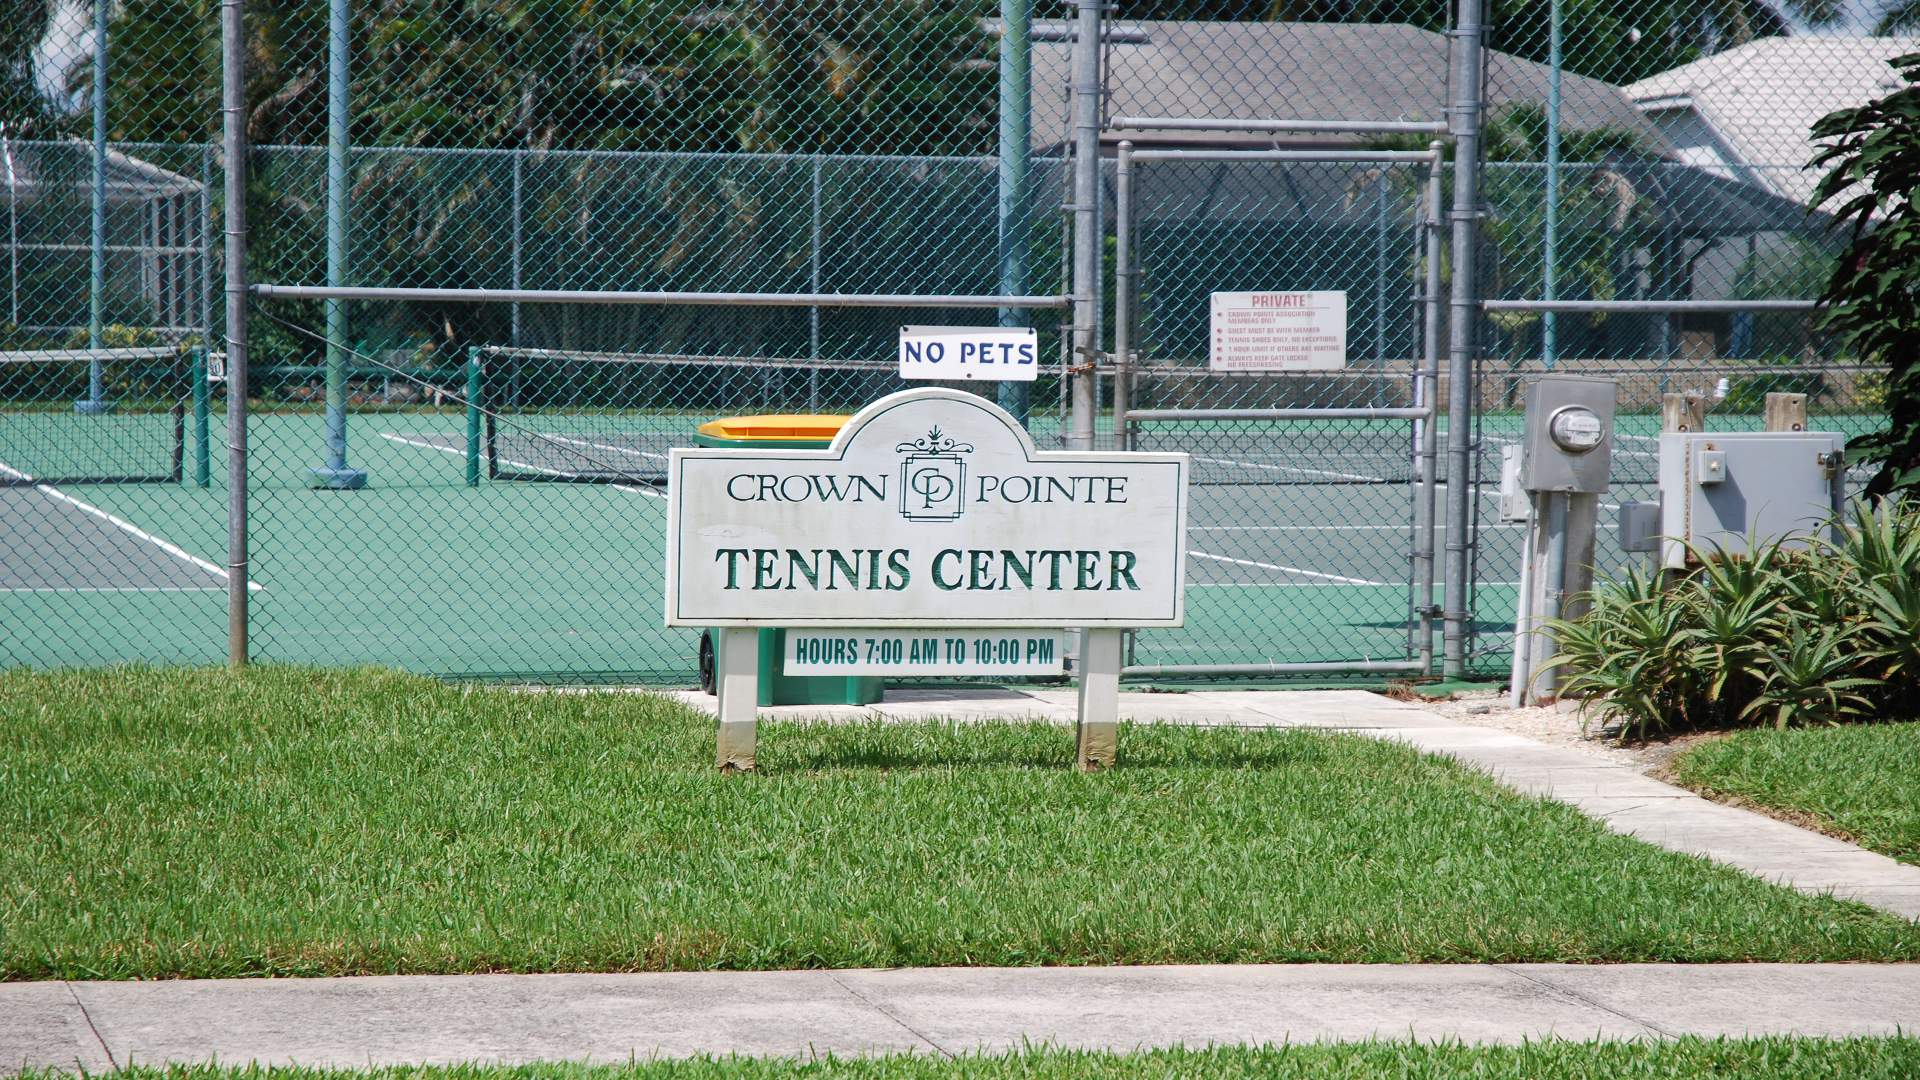 enjoy a tennis match on this courts